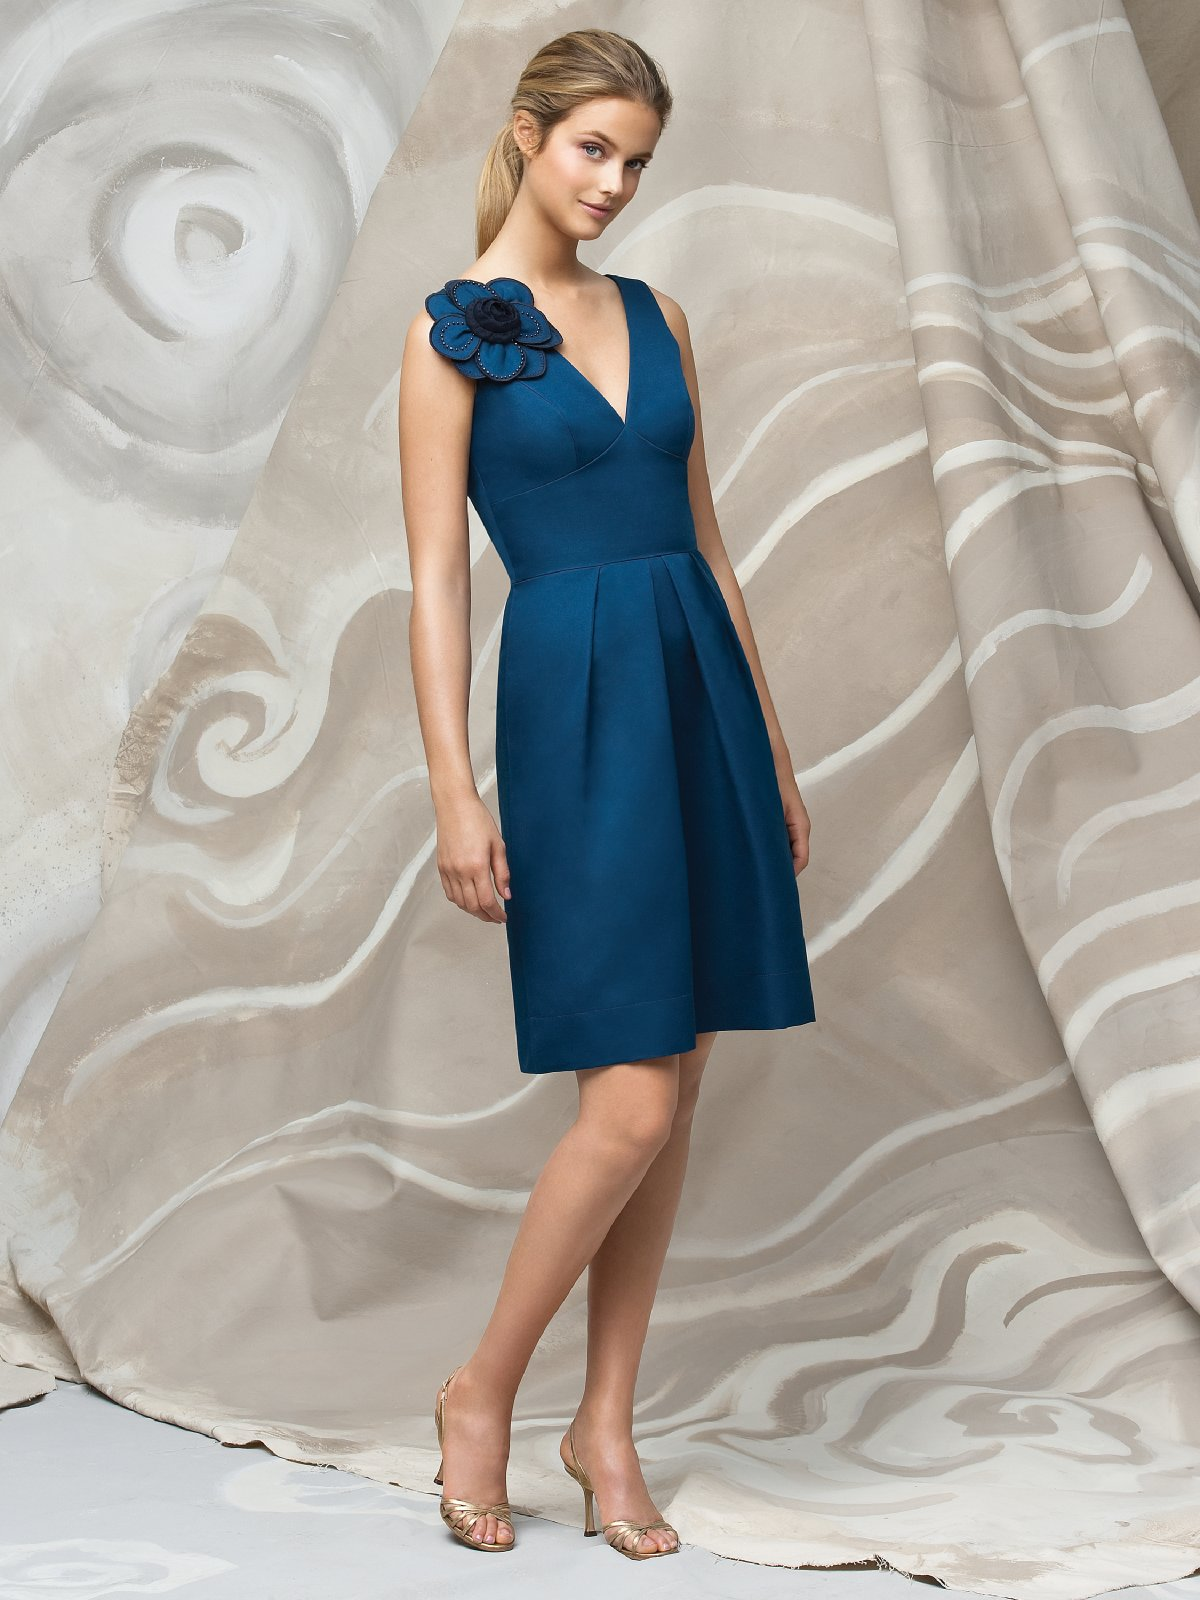 Teal A Line V Neck Knee Length Satin Prom Dresses With Draped Skirt And Flowers